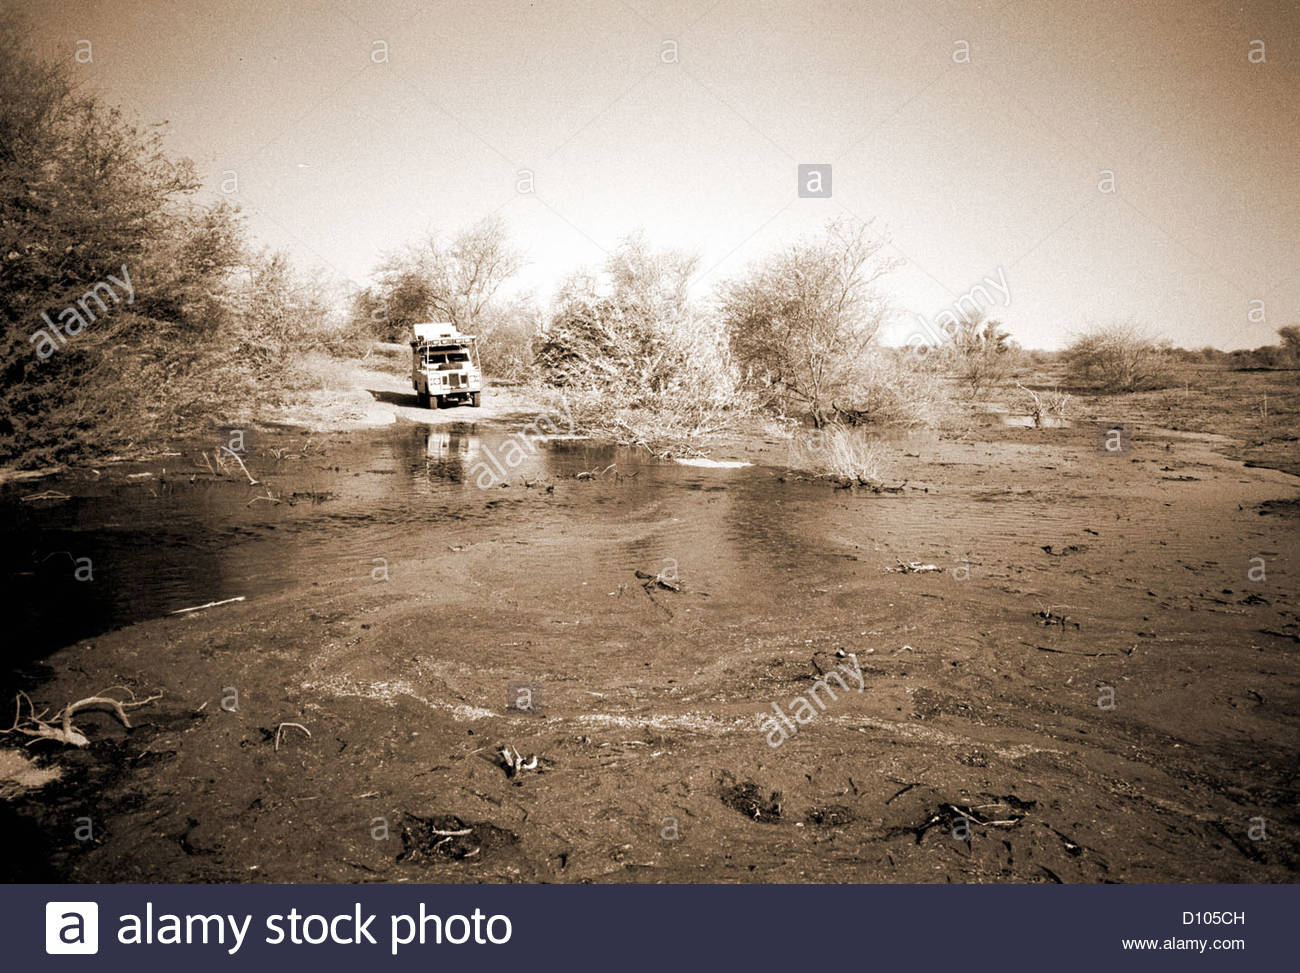 lake chad tchad lakes african africa africans sah - Stock Image